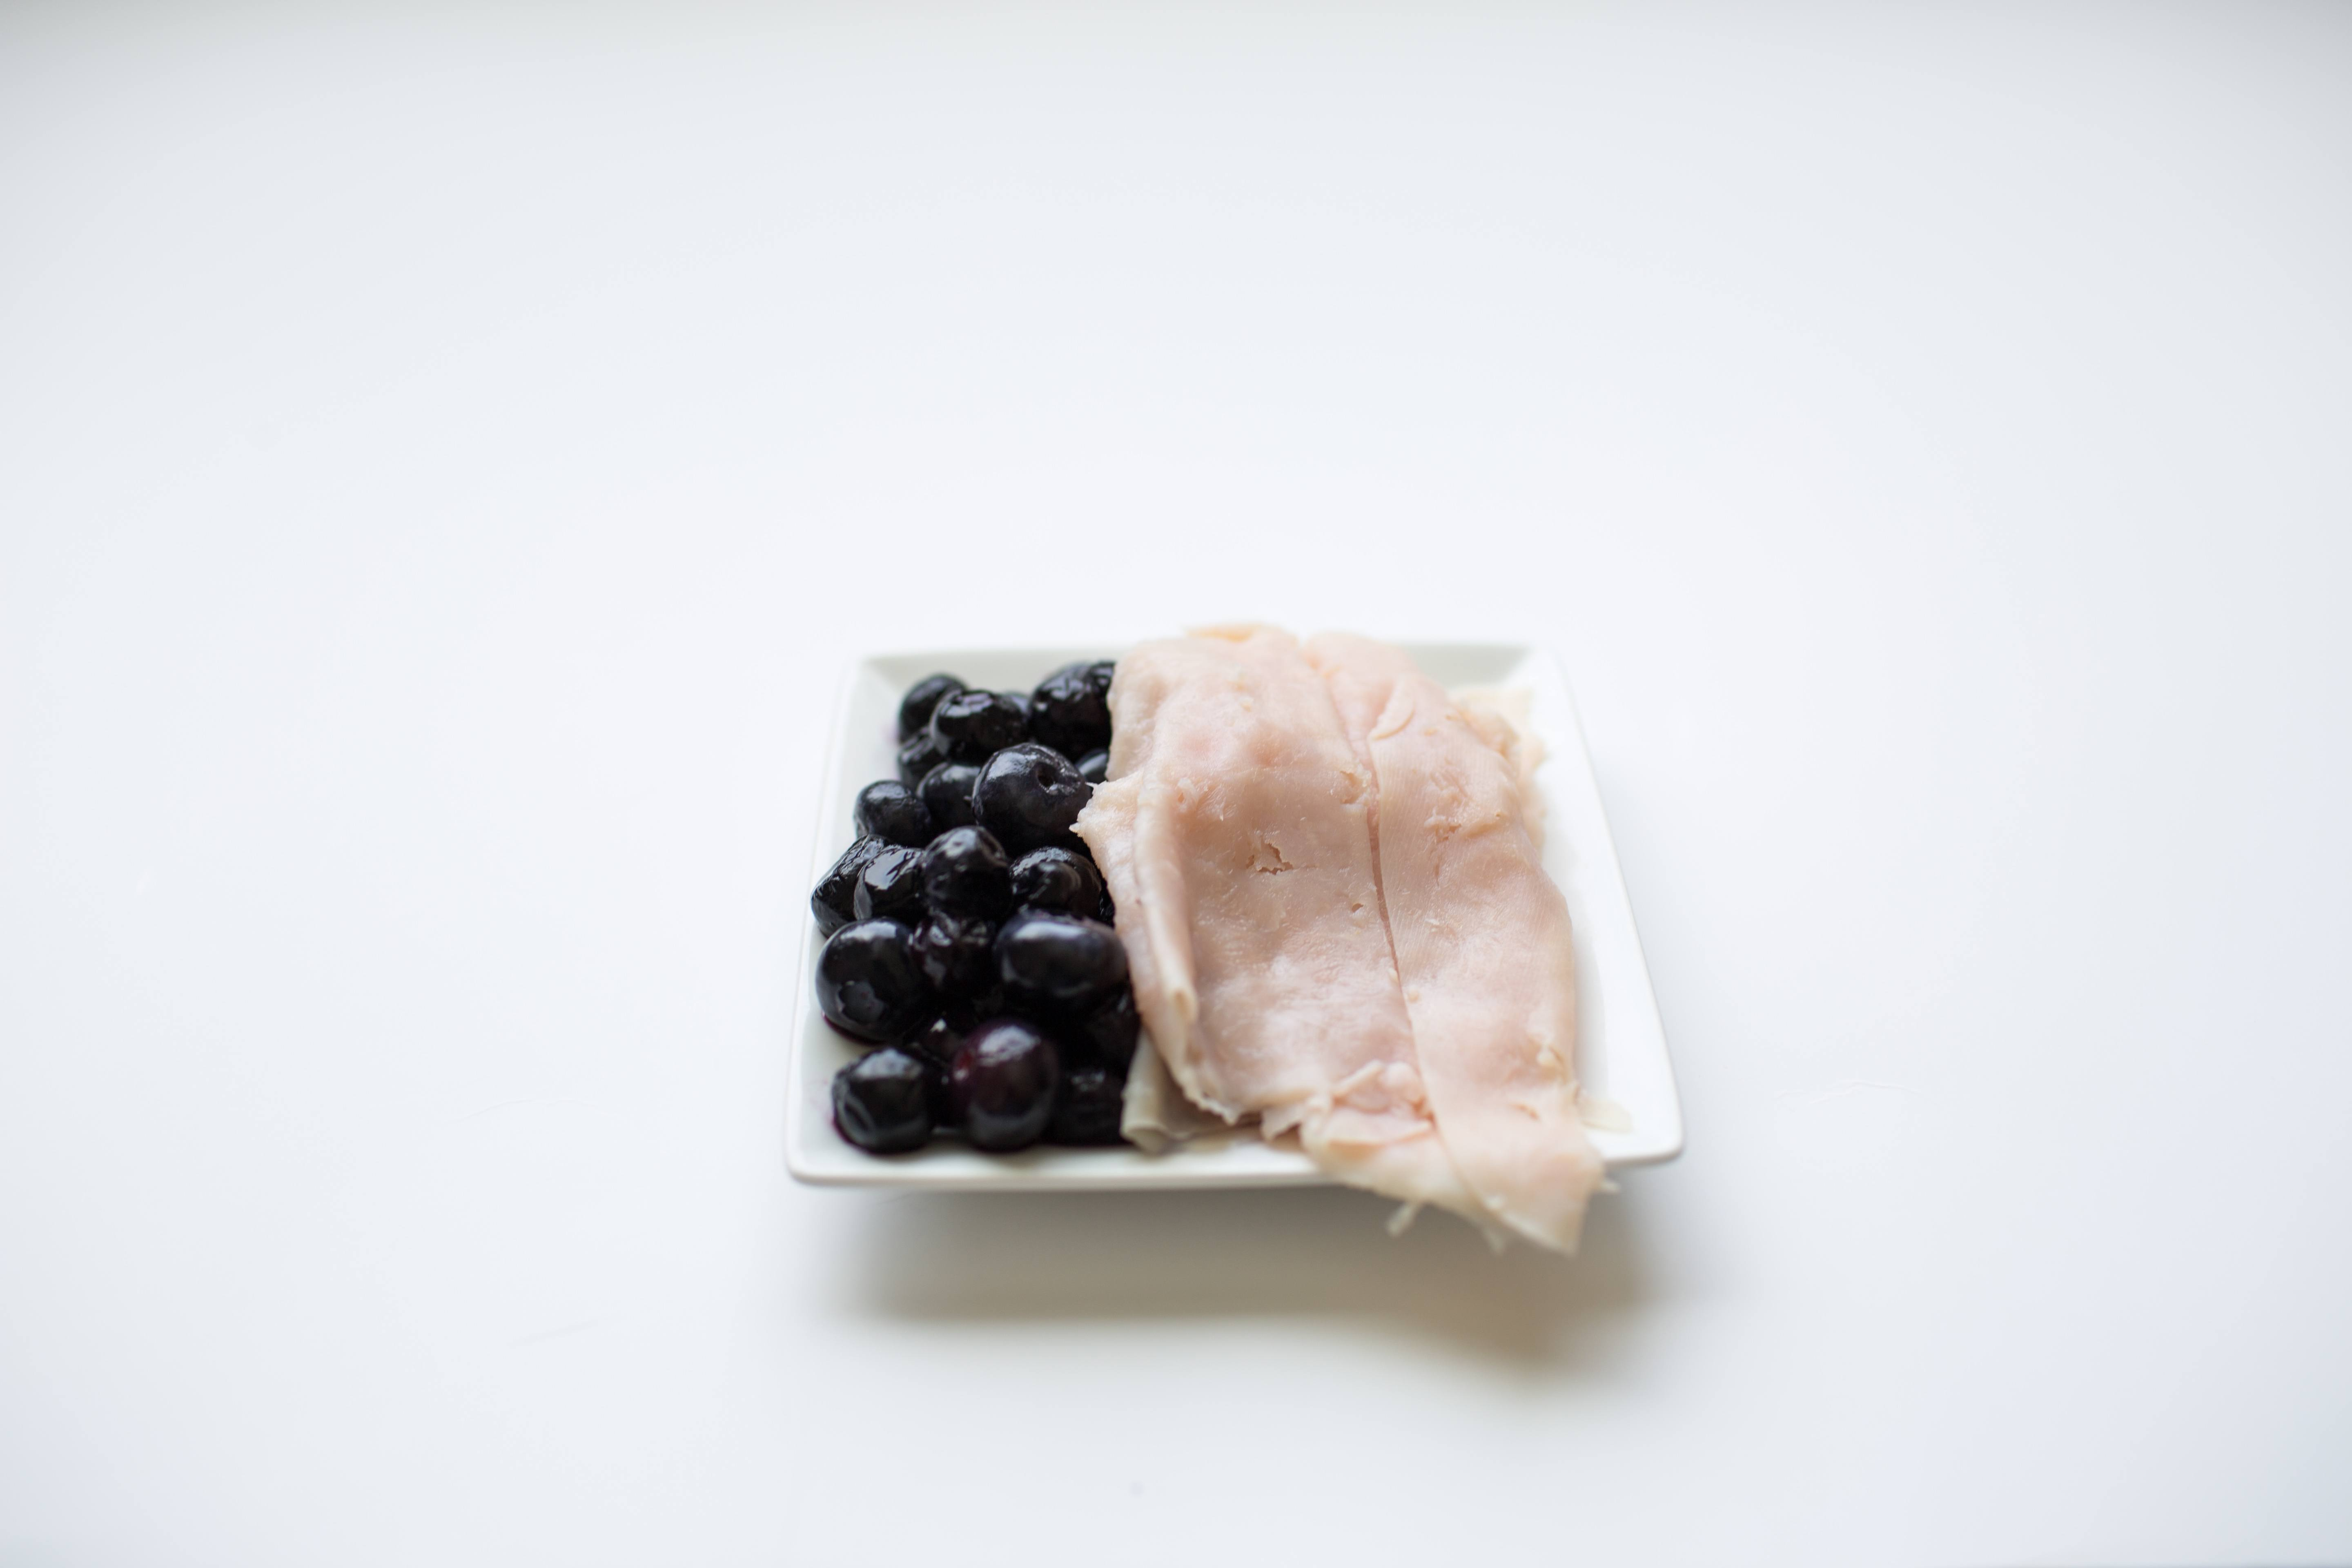 100 calorie snack blueberries and turkey